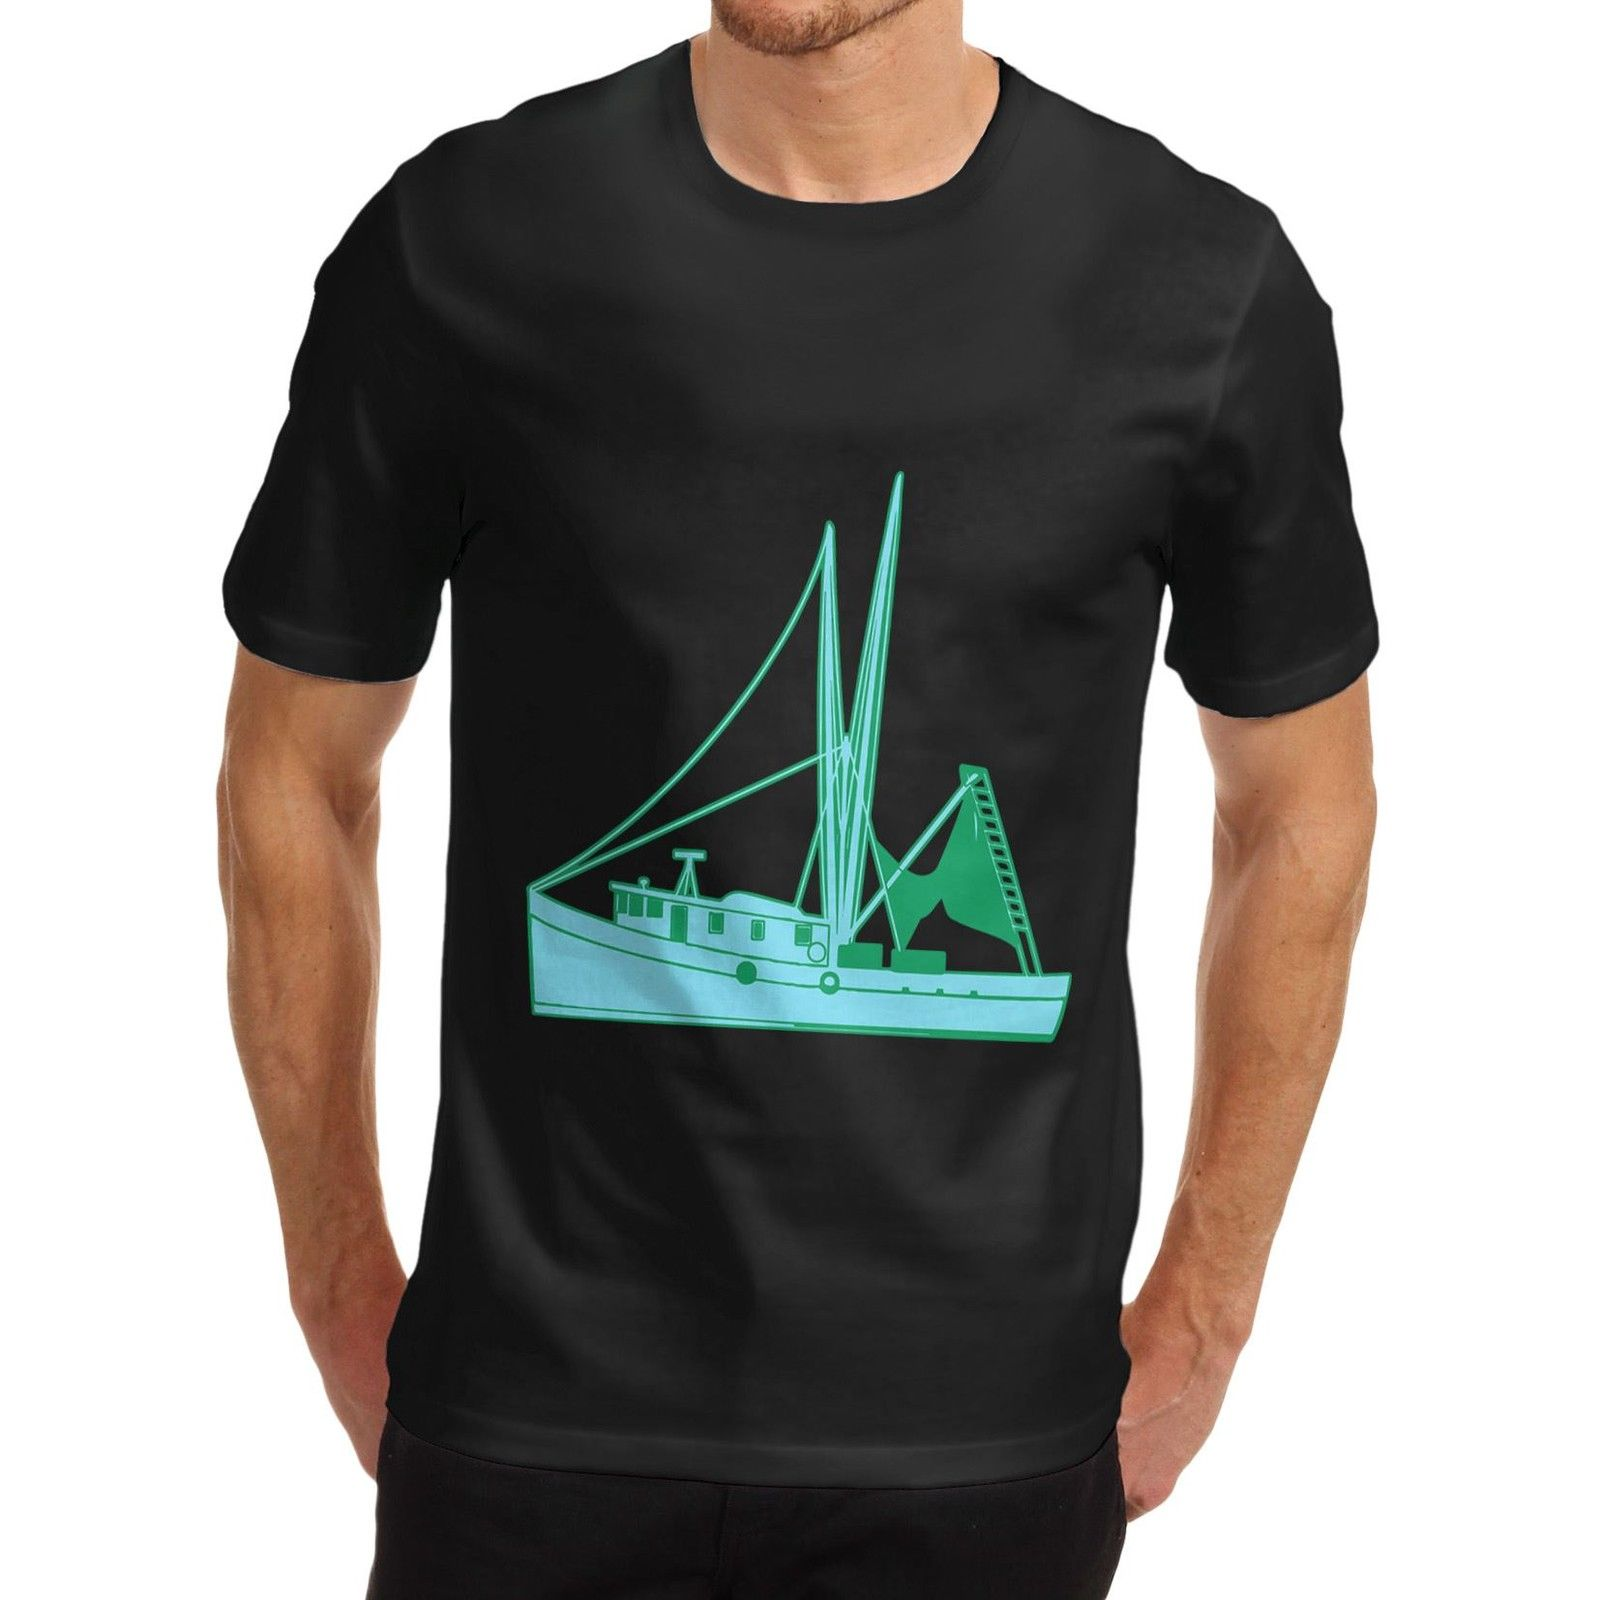 Design t shirt graphics online - Design T Shirt Graphics Online T Shirt Online Store Cotton Novelty Navy Design Bo